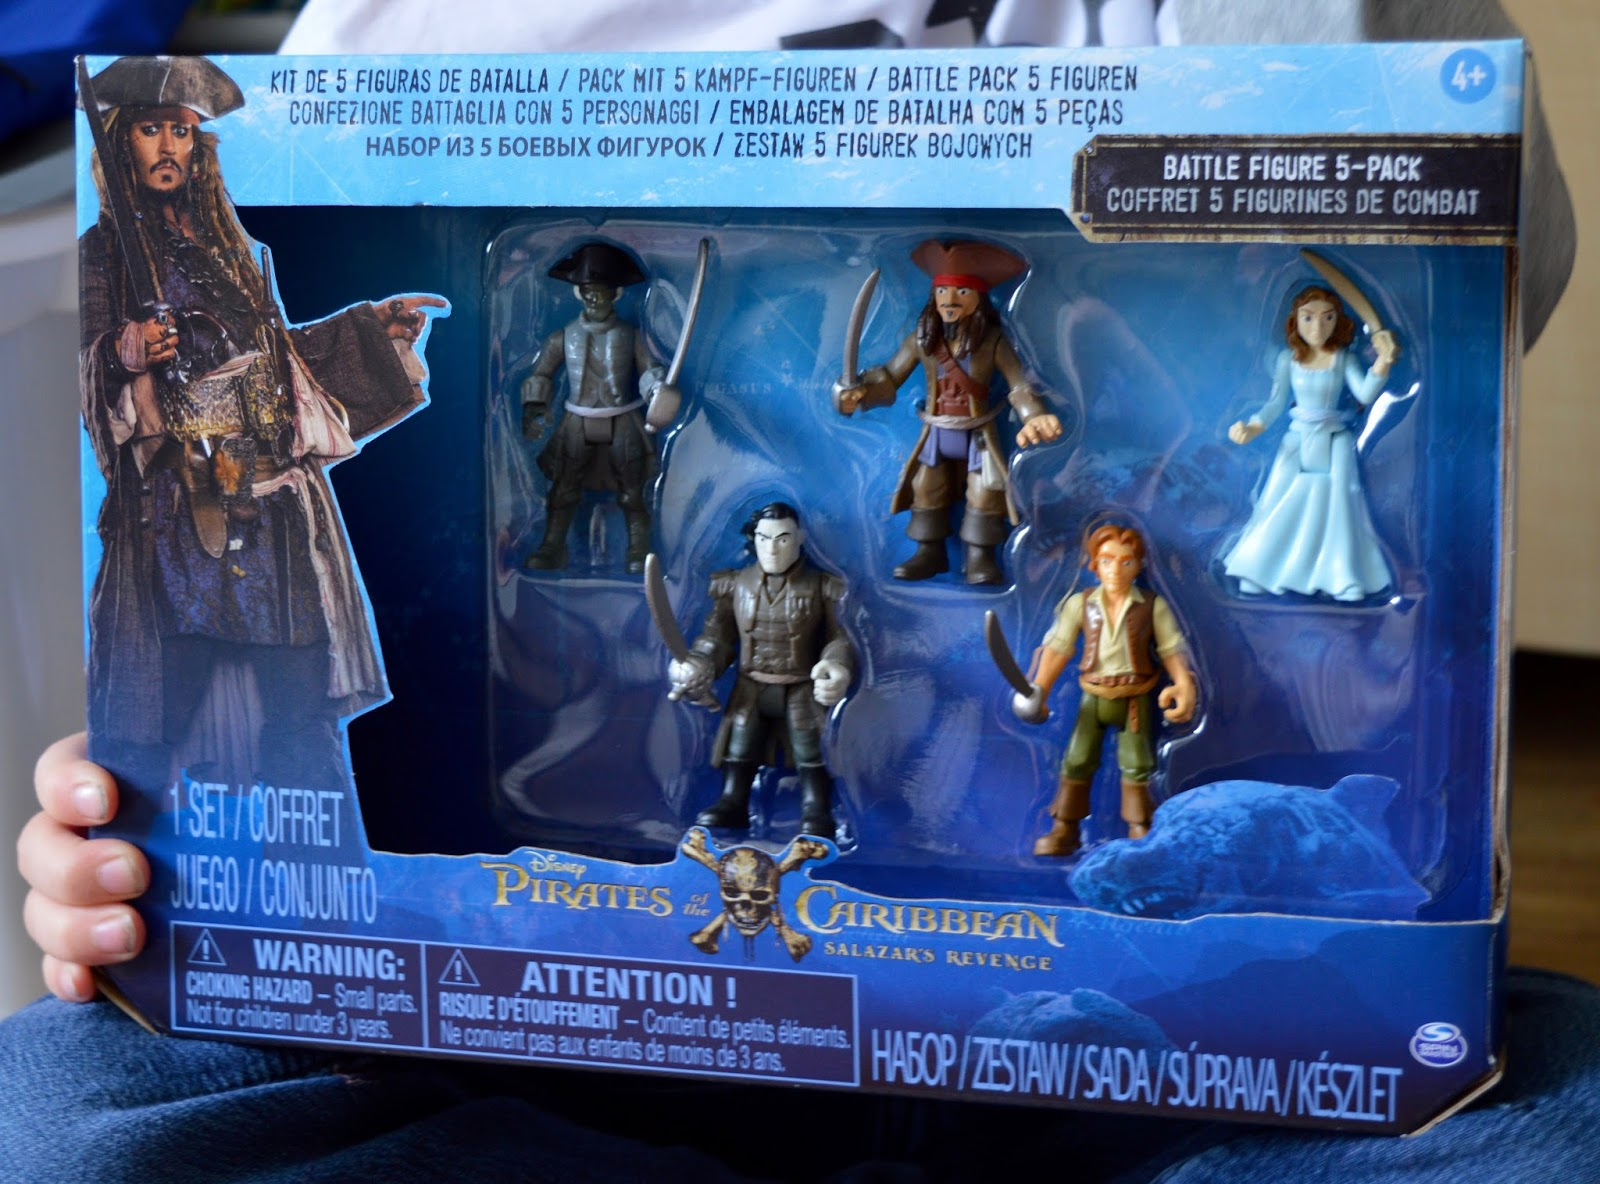 Pirates Of The Caribbean Toys : Pirates of the caribbean playsets we review jack sparrow